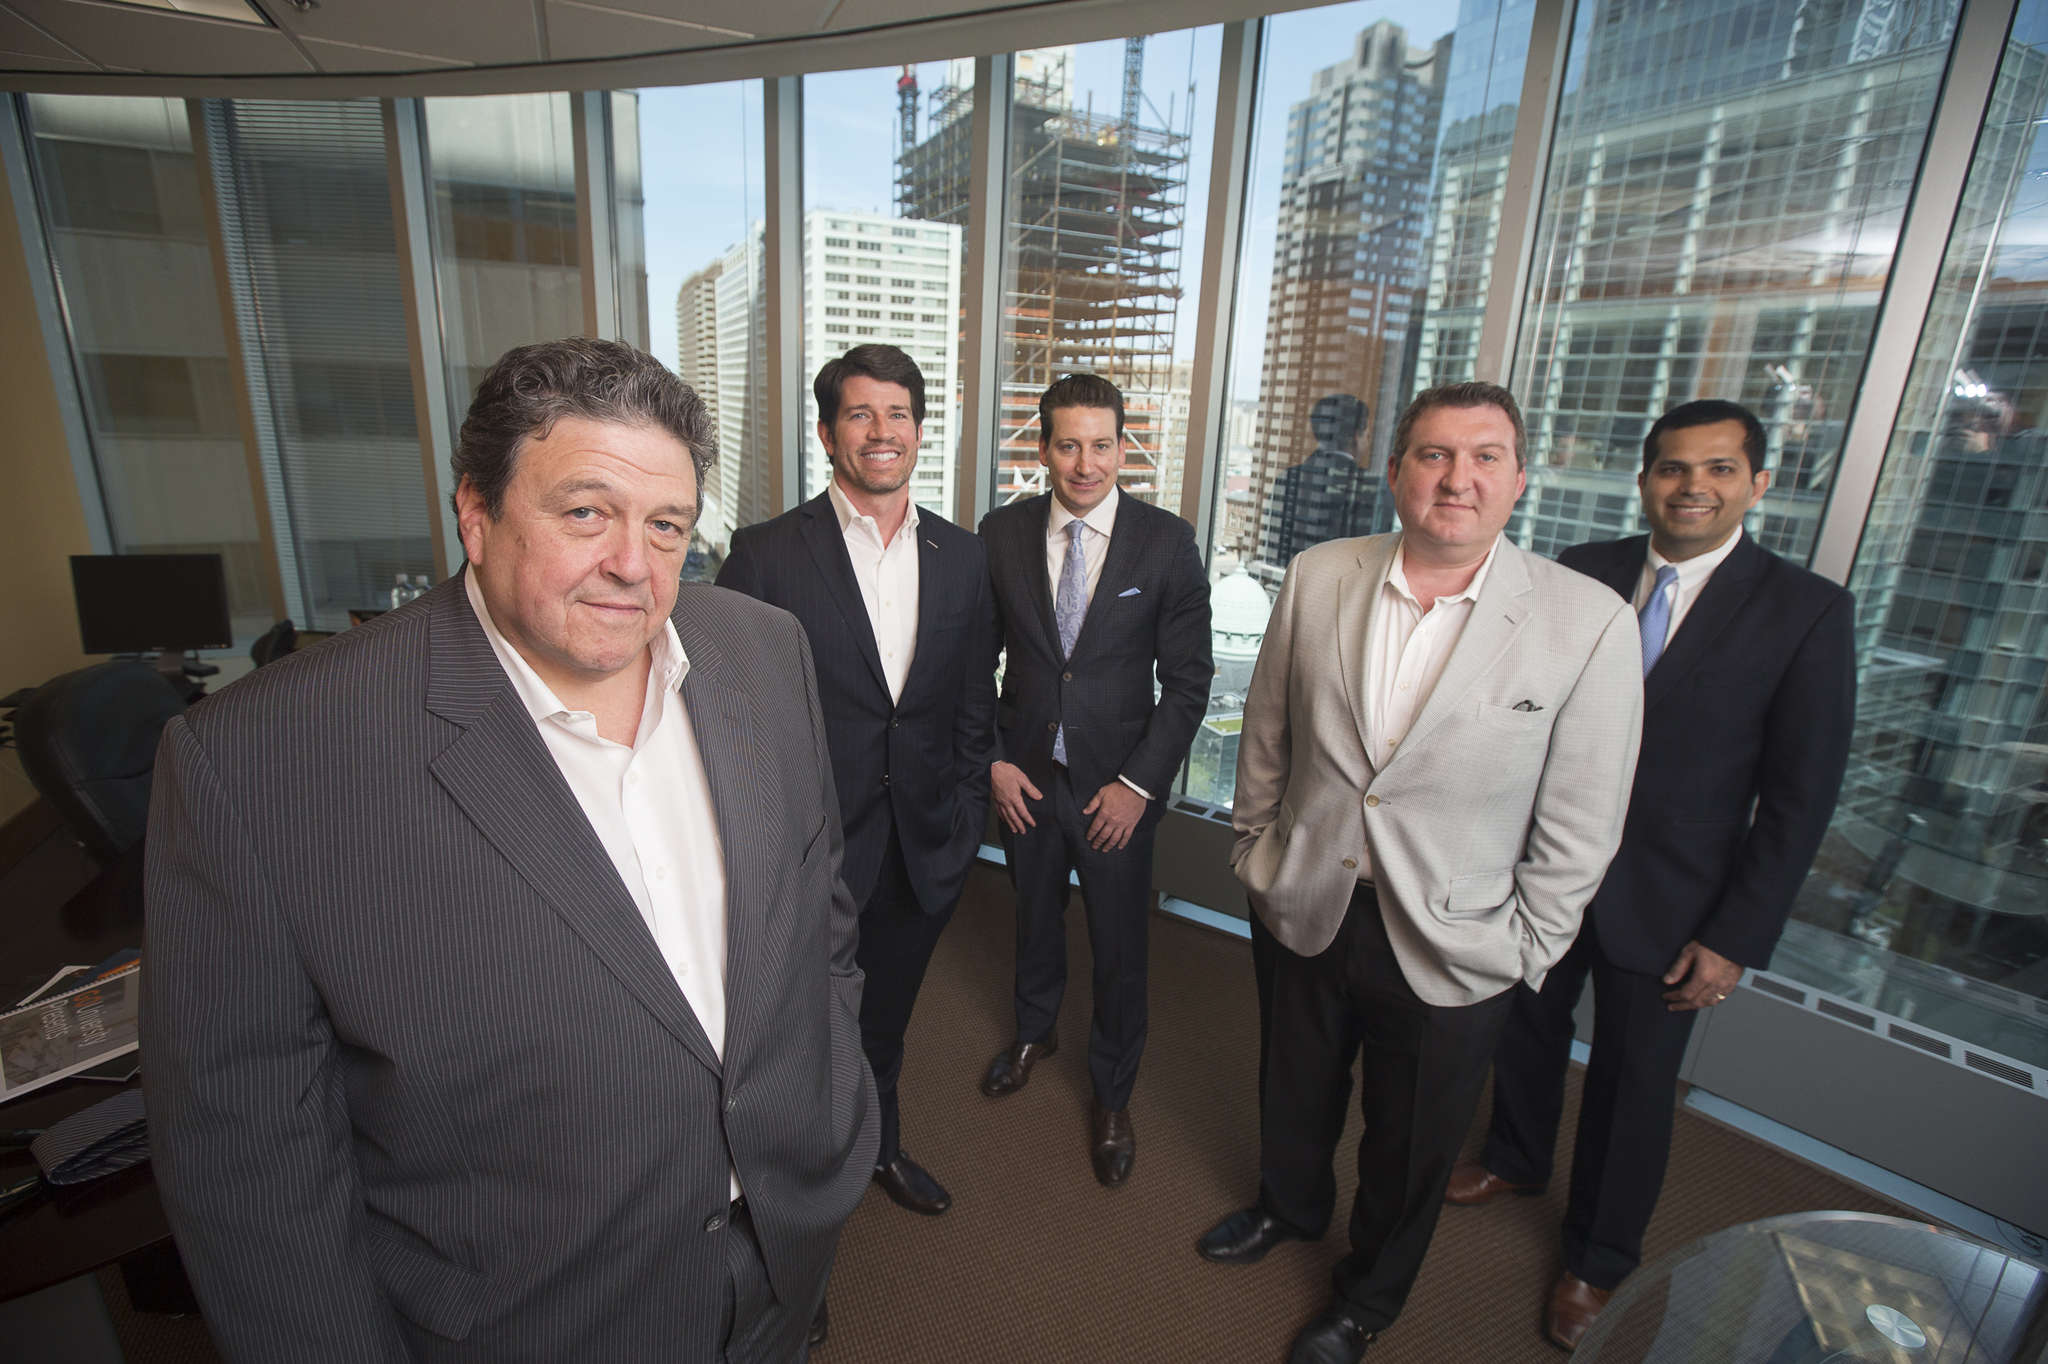 GoldOller´s multifaceted operation includes (from left) Richard S. Oller, Jake Hollinger, Ken Wellar, Benjamin Oller, and Gaurav Gambhir. GoldOller Real Estate Investments is valued at $1.5 billion-plus after just a few years in the making. Rentals and condos make up just part of the business.